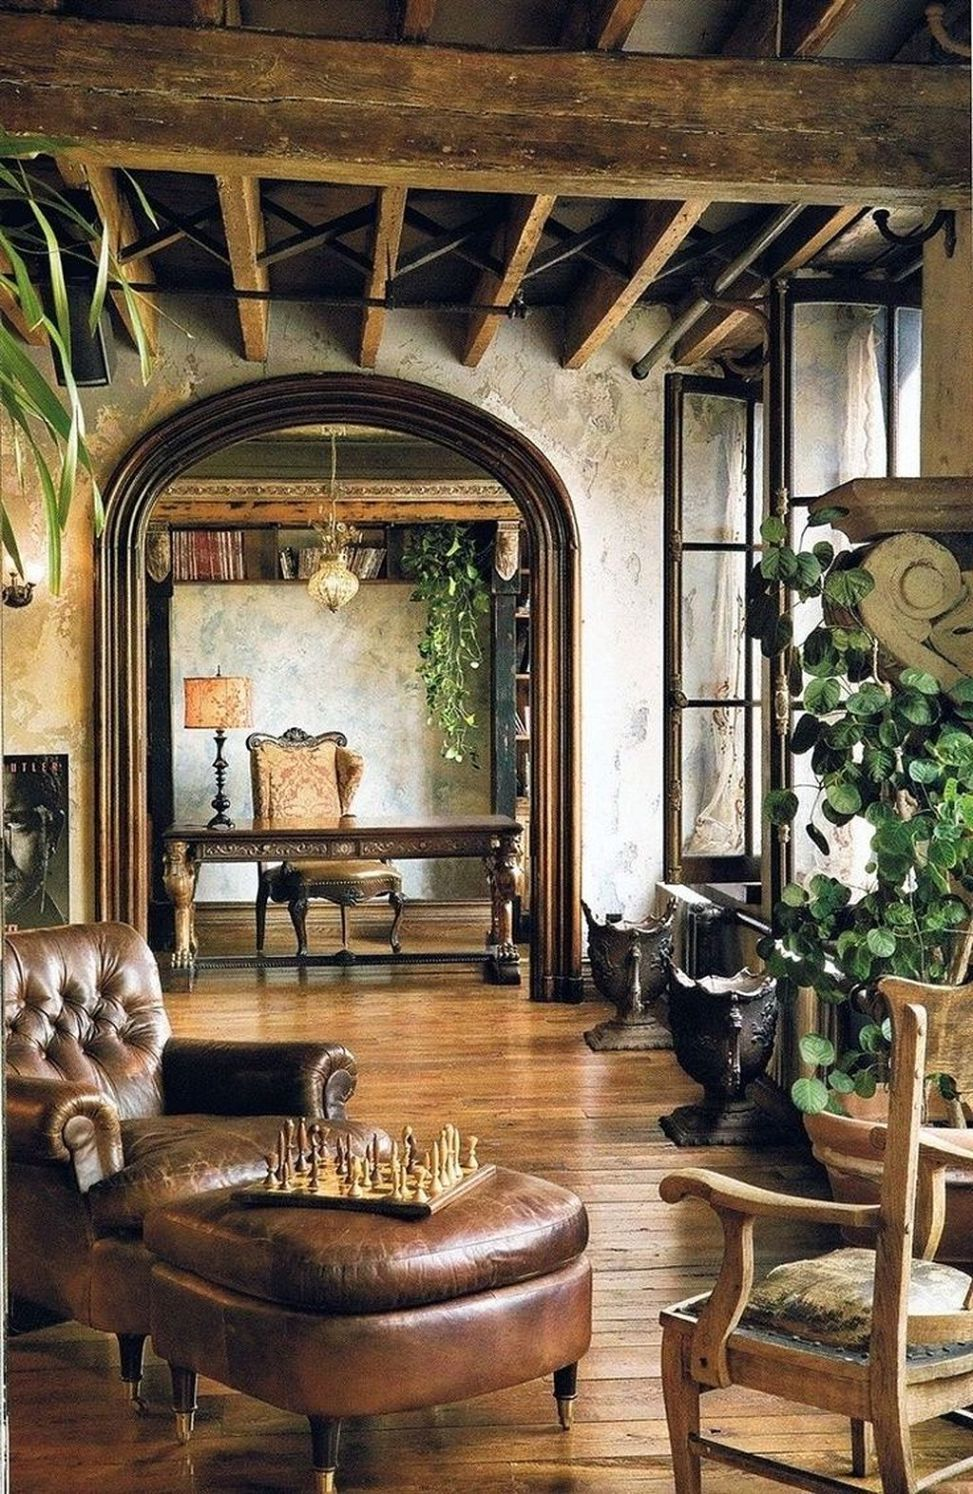 best rustic italian decor rustic italian decor rustic italian